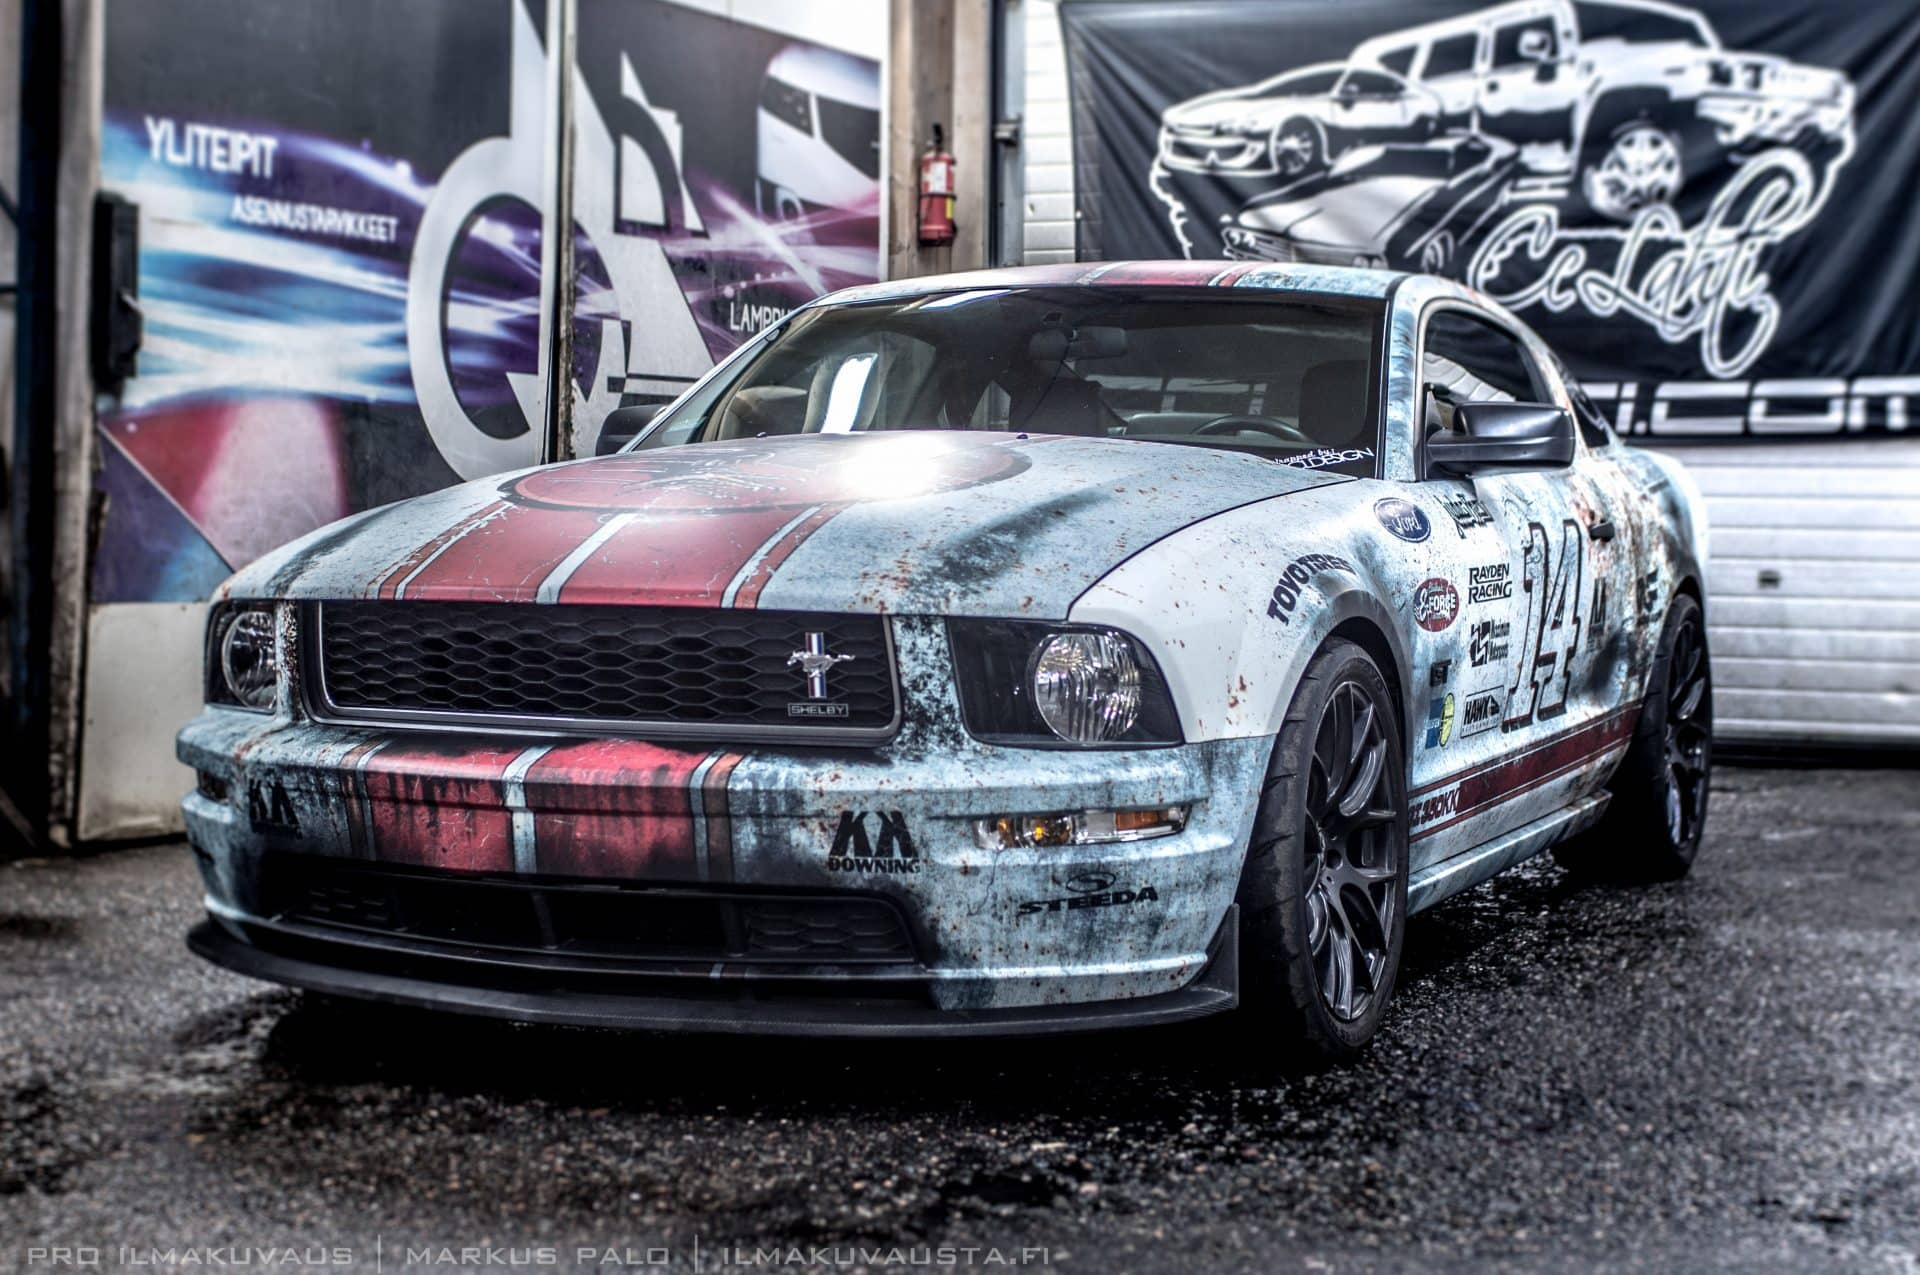 Retro Rust Wrap Design Ford Mustang GT | Skepple Inc